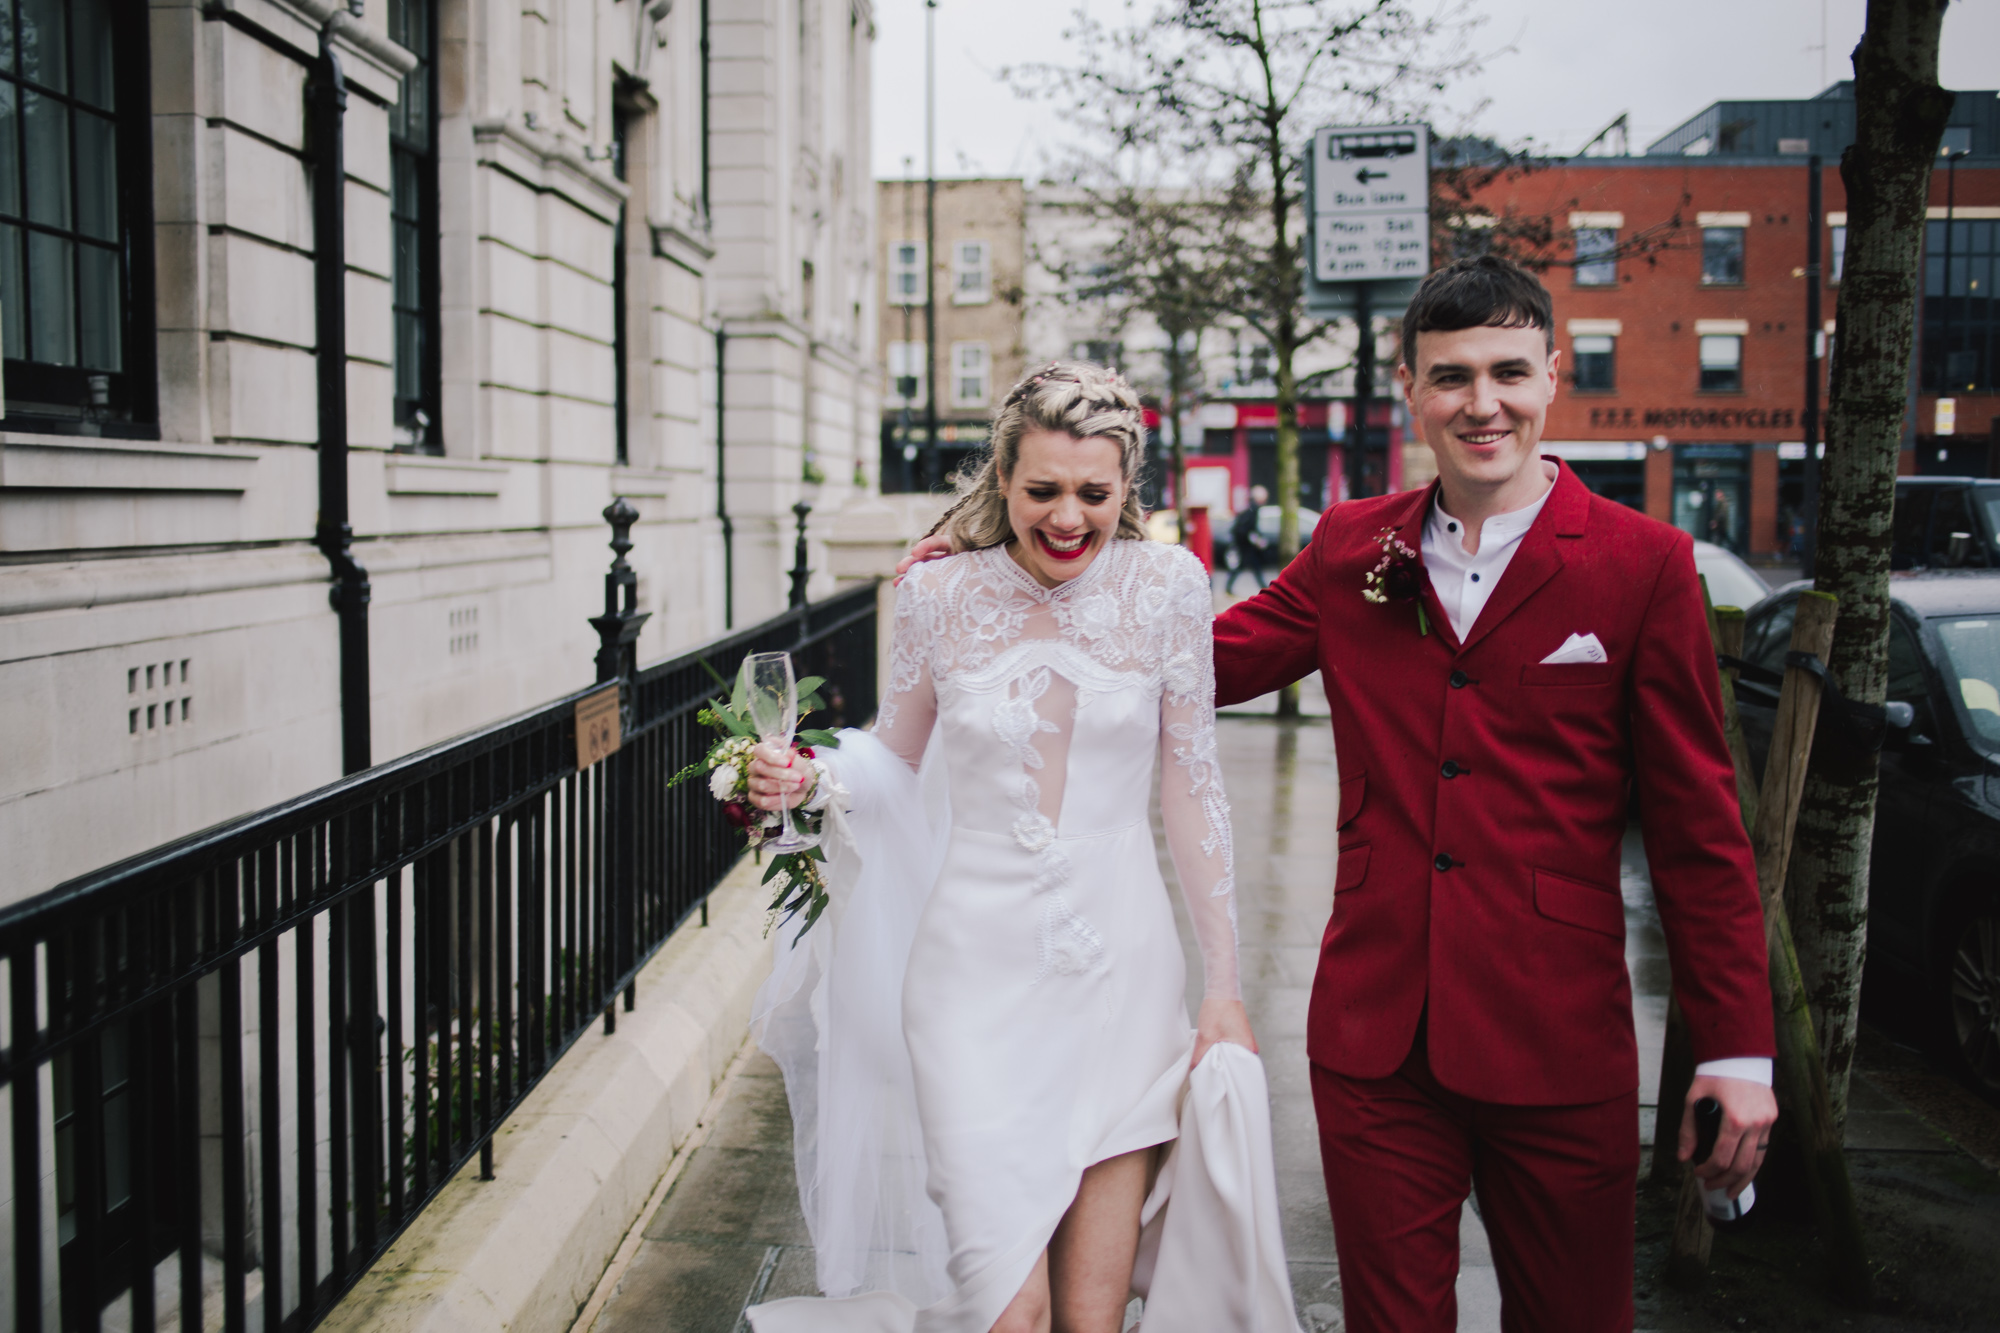 fe8f37eefa14a A customised 1970's Dress for a Real Most Curious Bride and her Modern,  Non-Traditional London Wedding | Love My Dress® UK Wedding Blog + Wedding  Directory